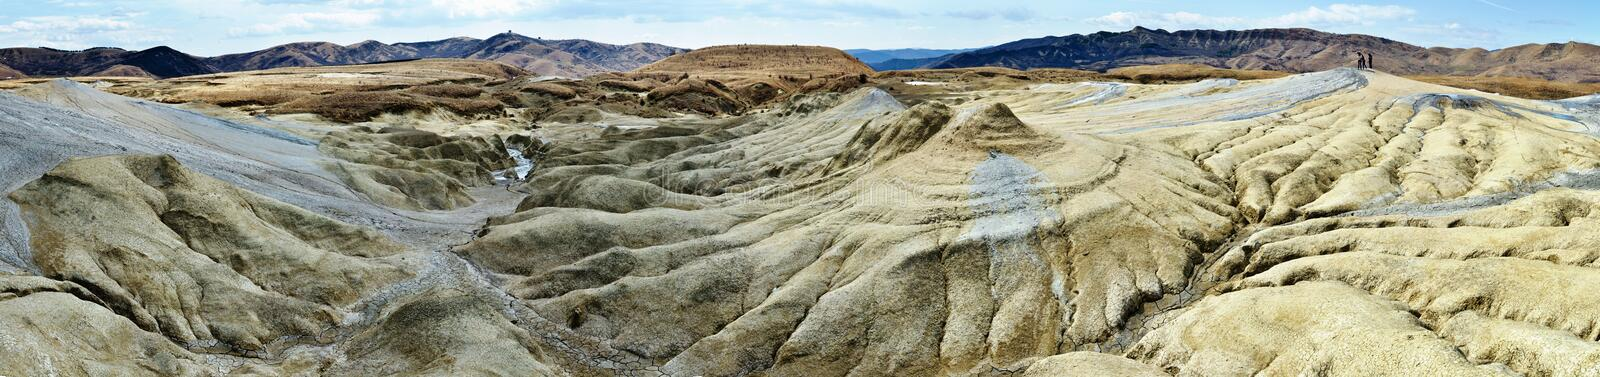 Download Mud volcanoes stock photo. Image of outdoors, geological - 24147928